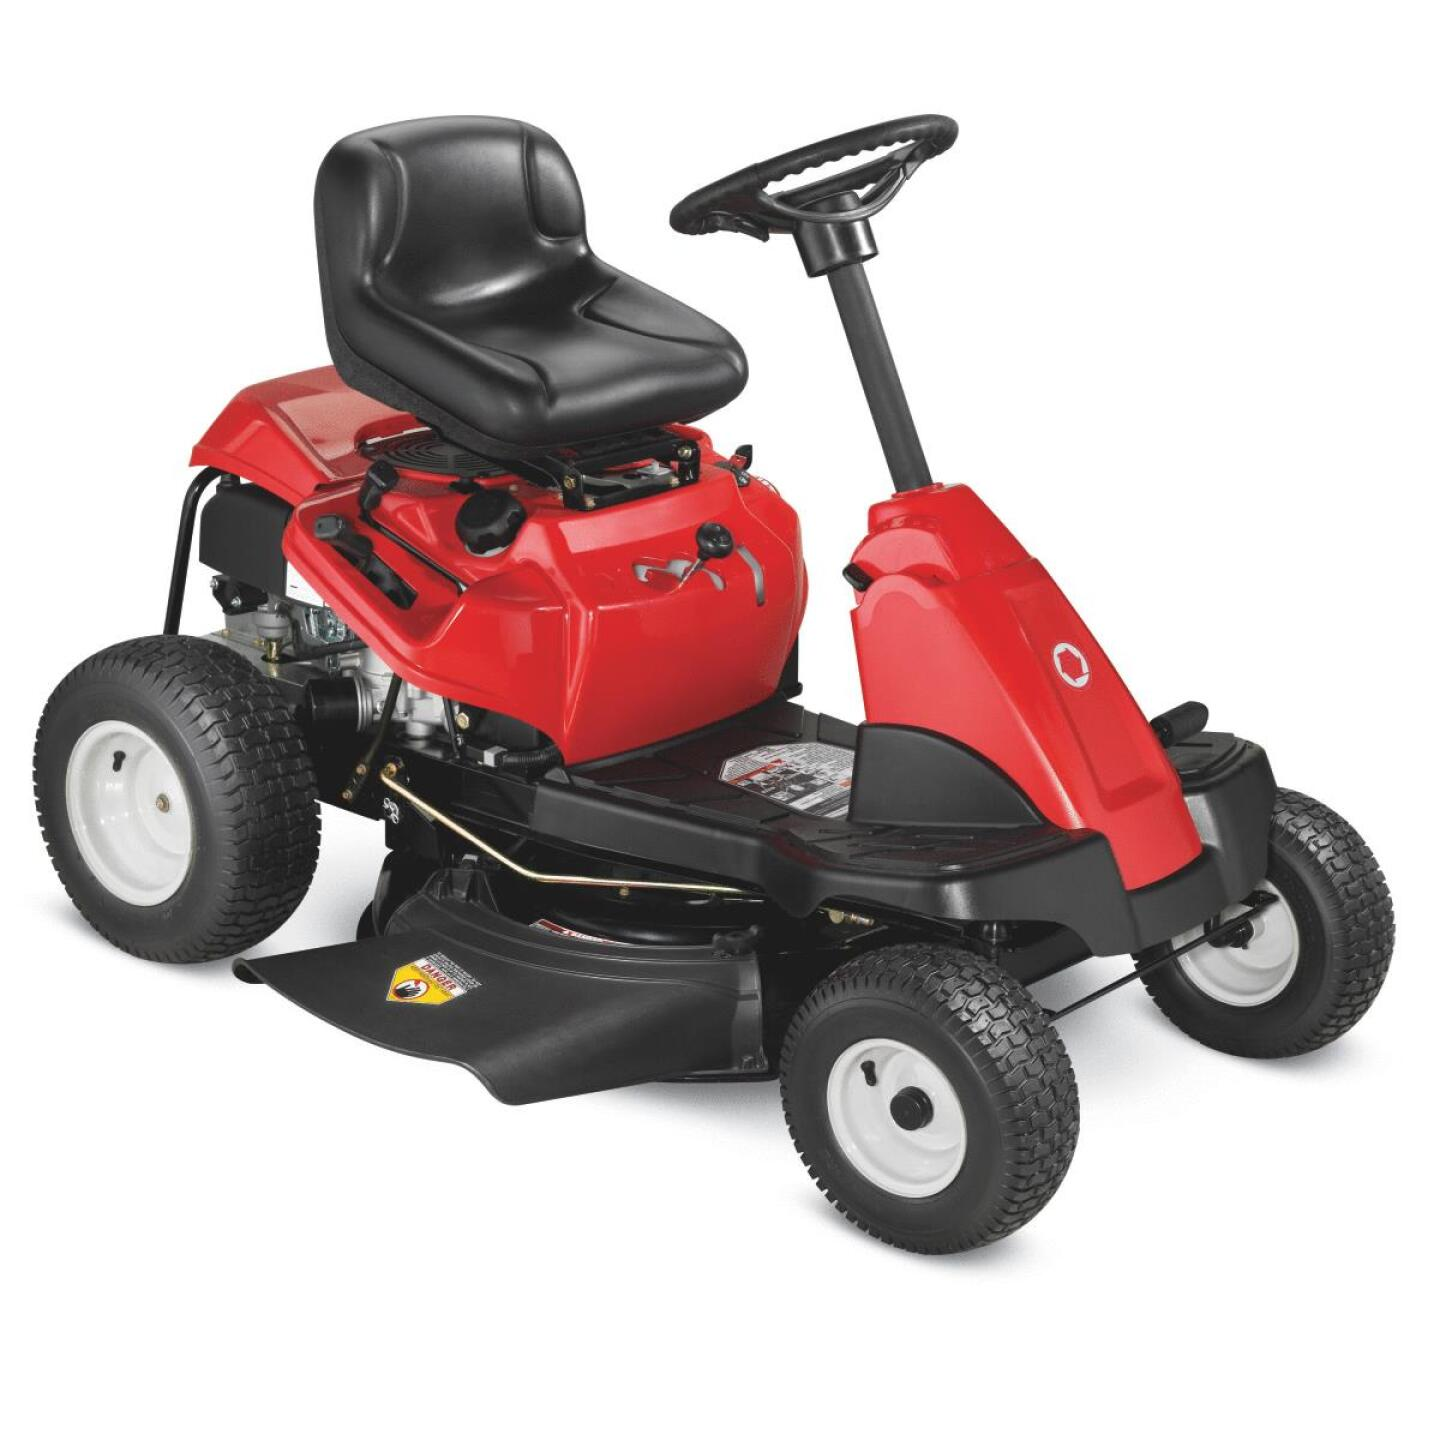 Troy-Bilt 30 In. 382cc Troy-Bilt Neighborhood Lawn Tractor Image 4